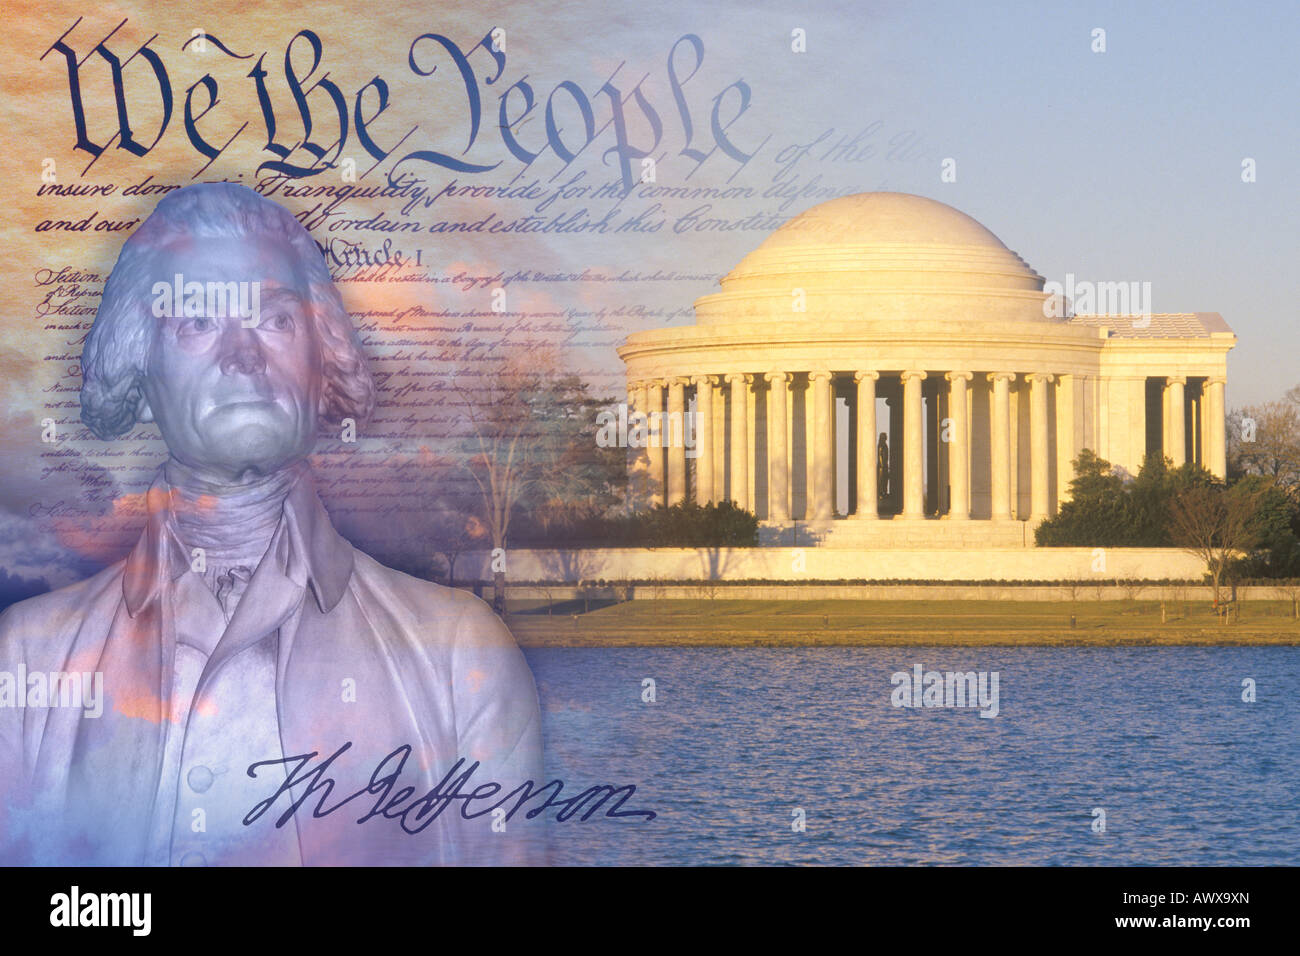 Composite image of Jefferson Memorial, US Constitution, and bust of Thomas Jefferson with his signature - Stock Image